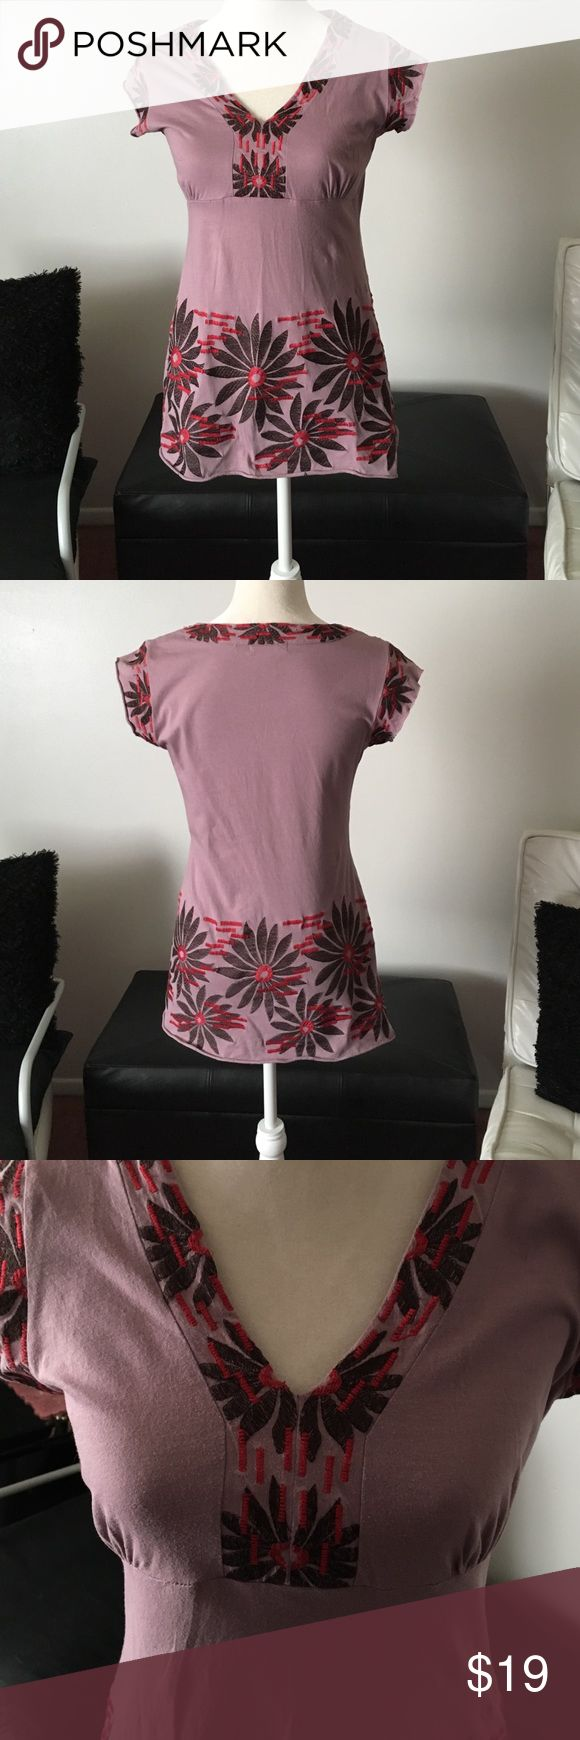 BCBGMaxazria Top In very good condition with the exception of very small hole that I had sewn. Happened when I removed the tags. Plz look at pic #4. It is on the top back neck near the tags. Not really noticeable (my opinion). Bust /chest measures approx 17.5 inches. Length is approx 27.5. This runs small so would fit small or medium better. Again my opinion. This has the raw edges on the sleeves and bottom part of top BCBGMaxAzria Tops